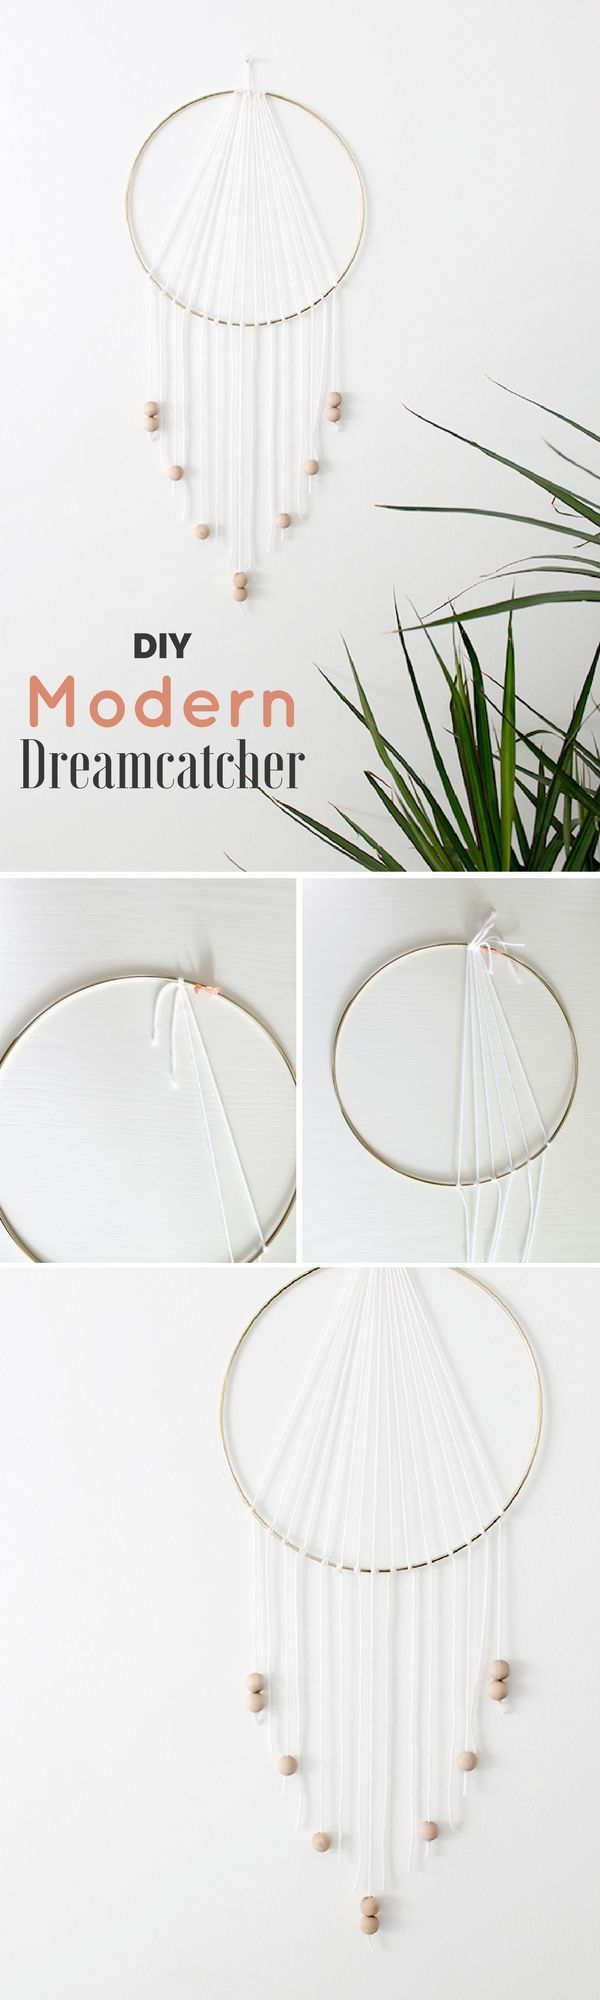 Check out how to make a very easy #DIY Modern Dreamcatcher for bedroom decor #HomeDecorIdeas #BedroomIdeas @istandarddesign